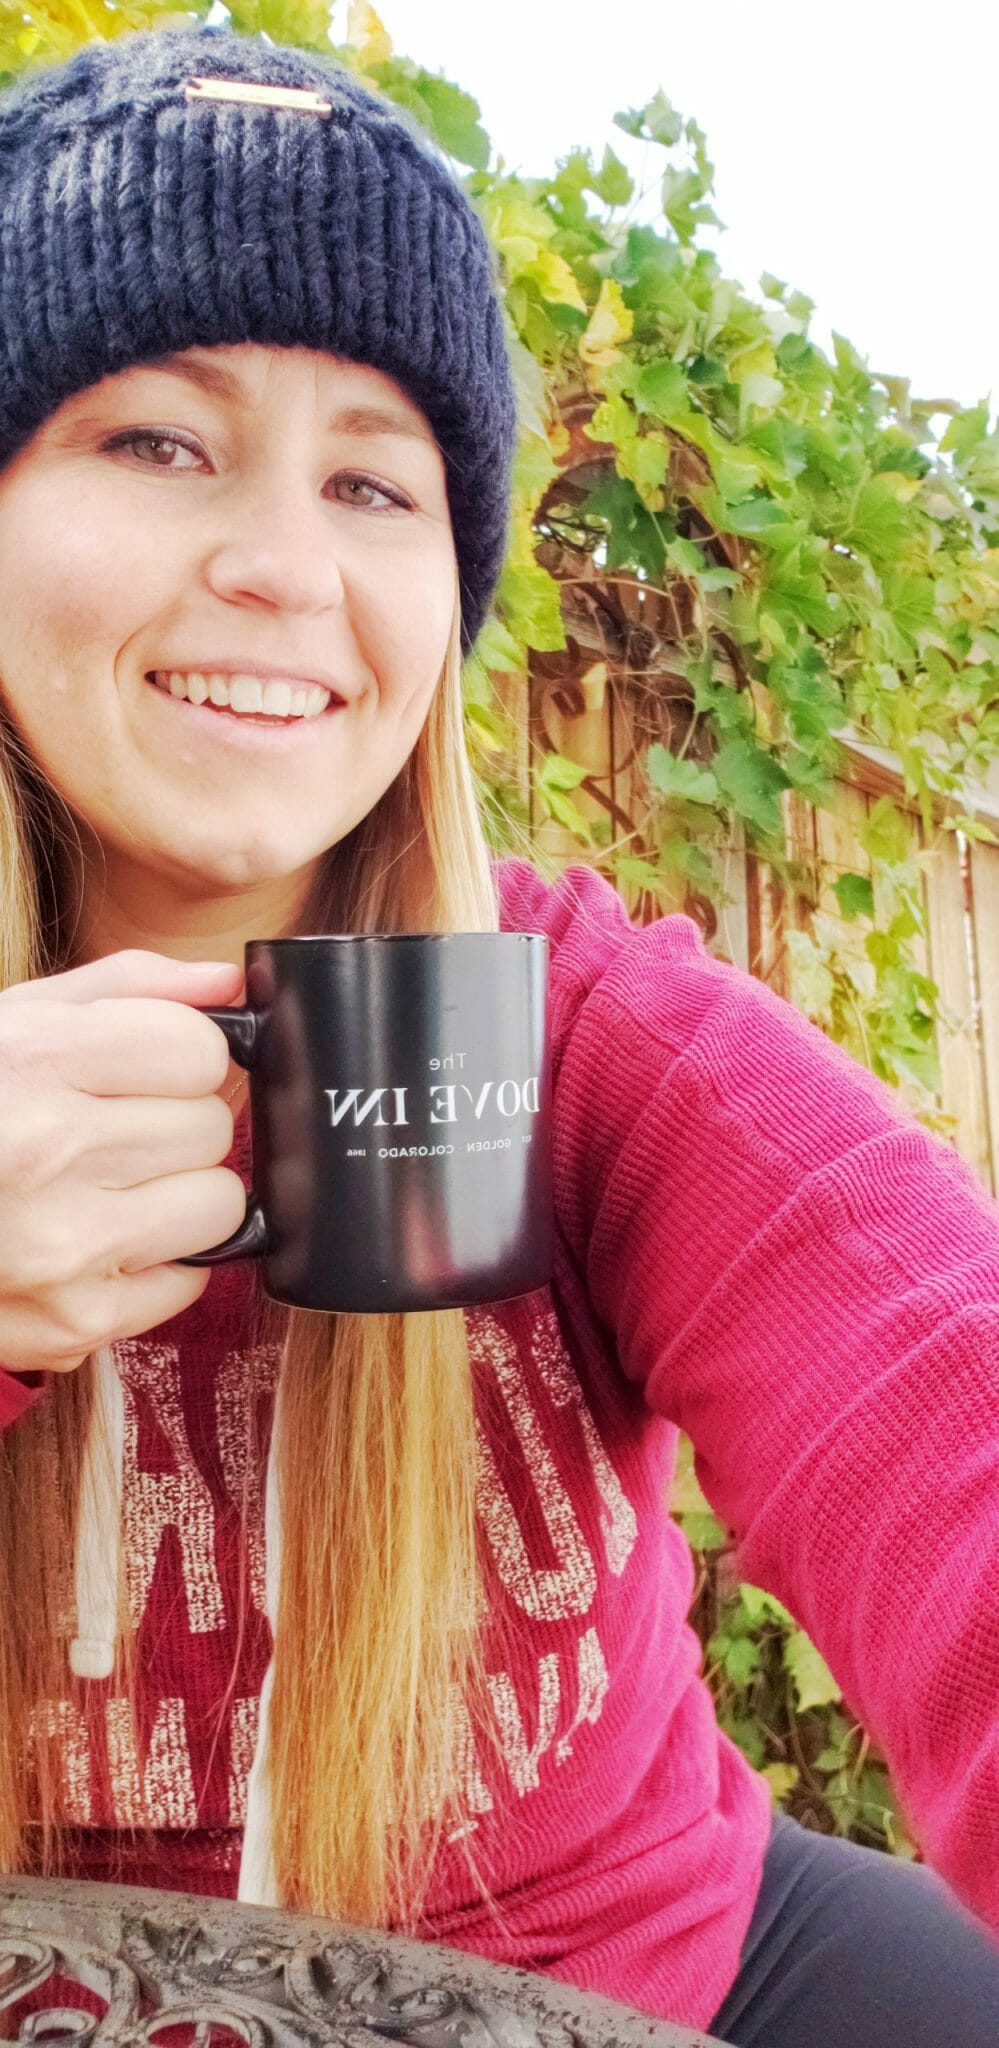 A woman with long blond hair wearing a black beanie holds a black coffee cup that says